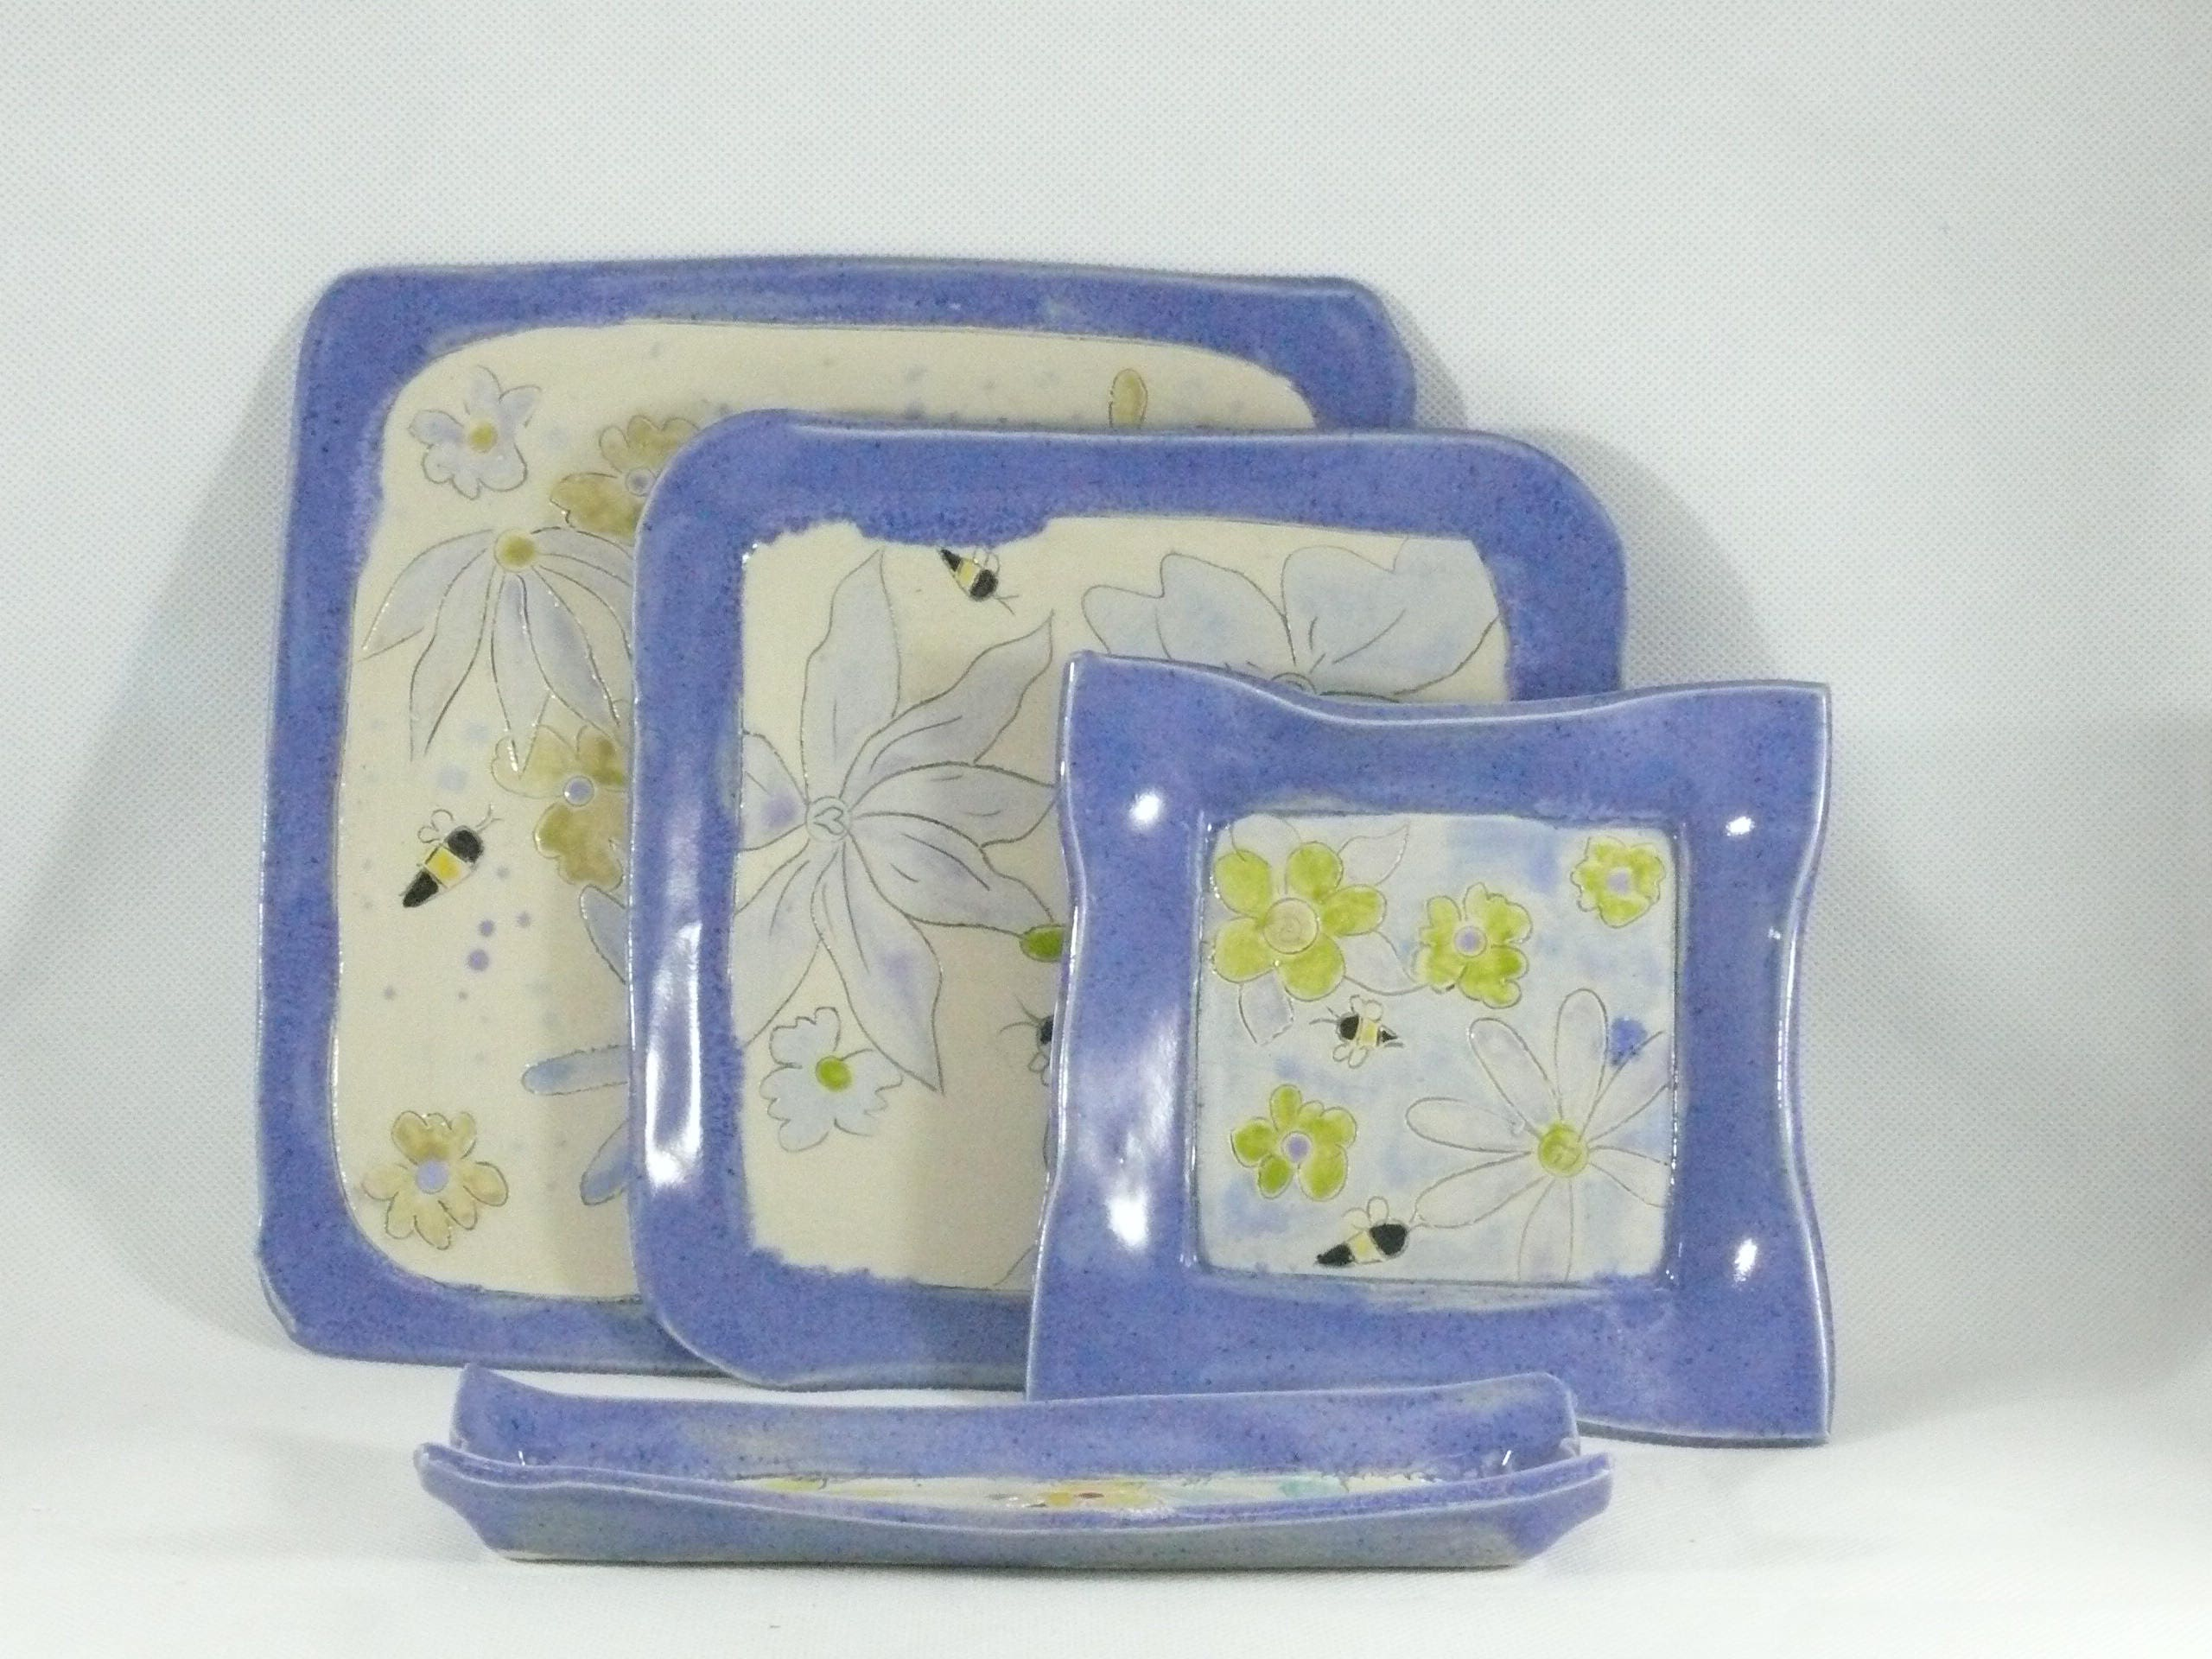 Request a custom order and have something made just for you. & Square plates Ceramic Dinnerware set Serving tray cheese